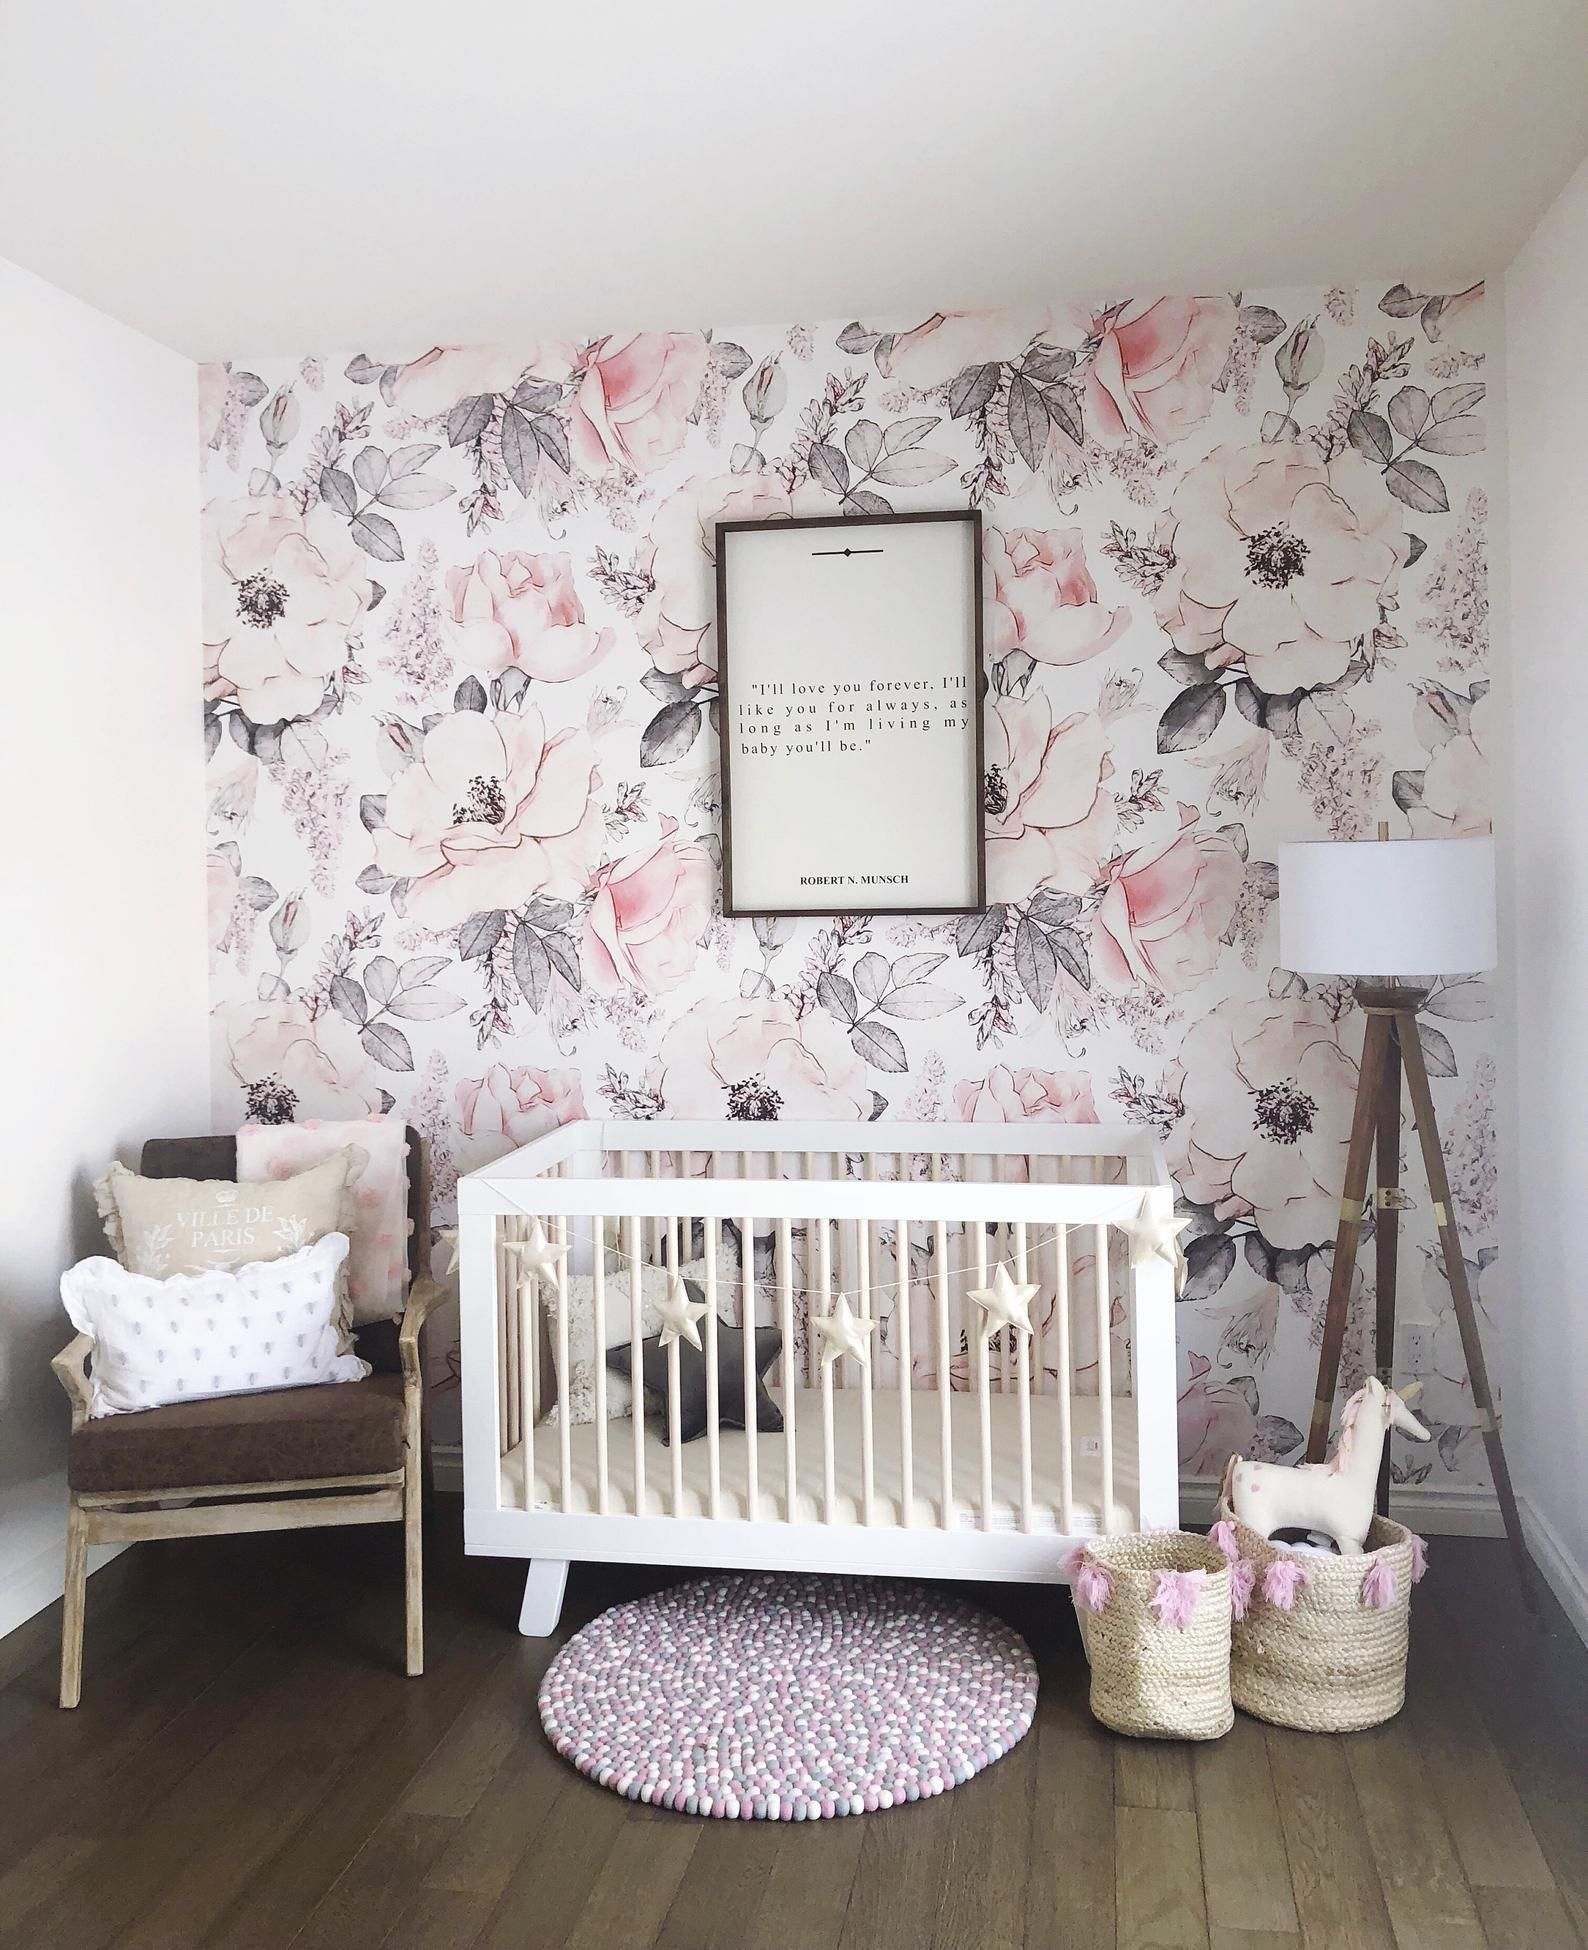 Snowy Rose Giant Pink And White Peony Removable Wallpaper Etsy In 2020 Baby Girl Wallpaper Nursery Wallpaper Girl Room